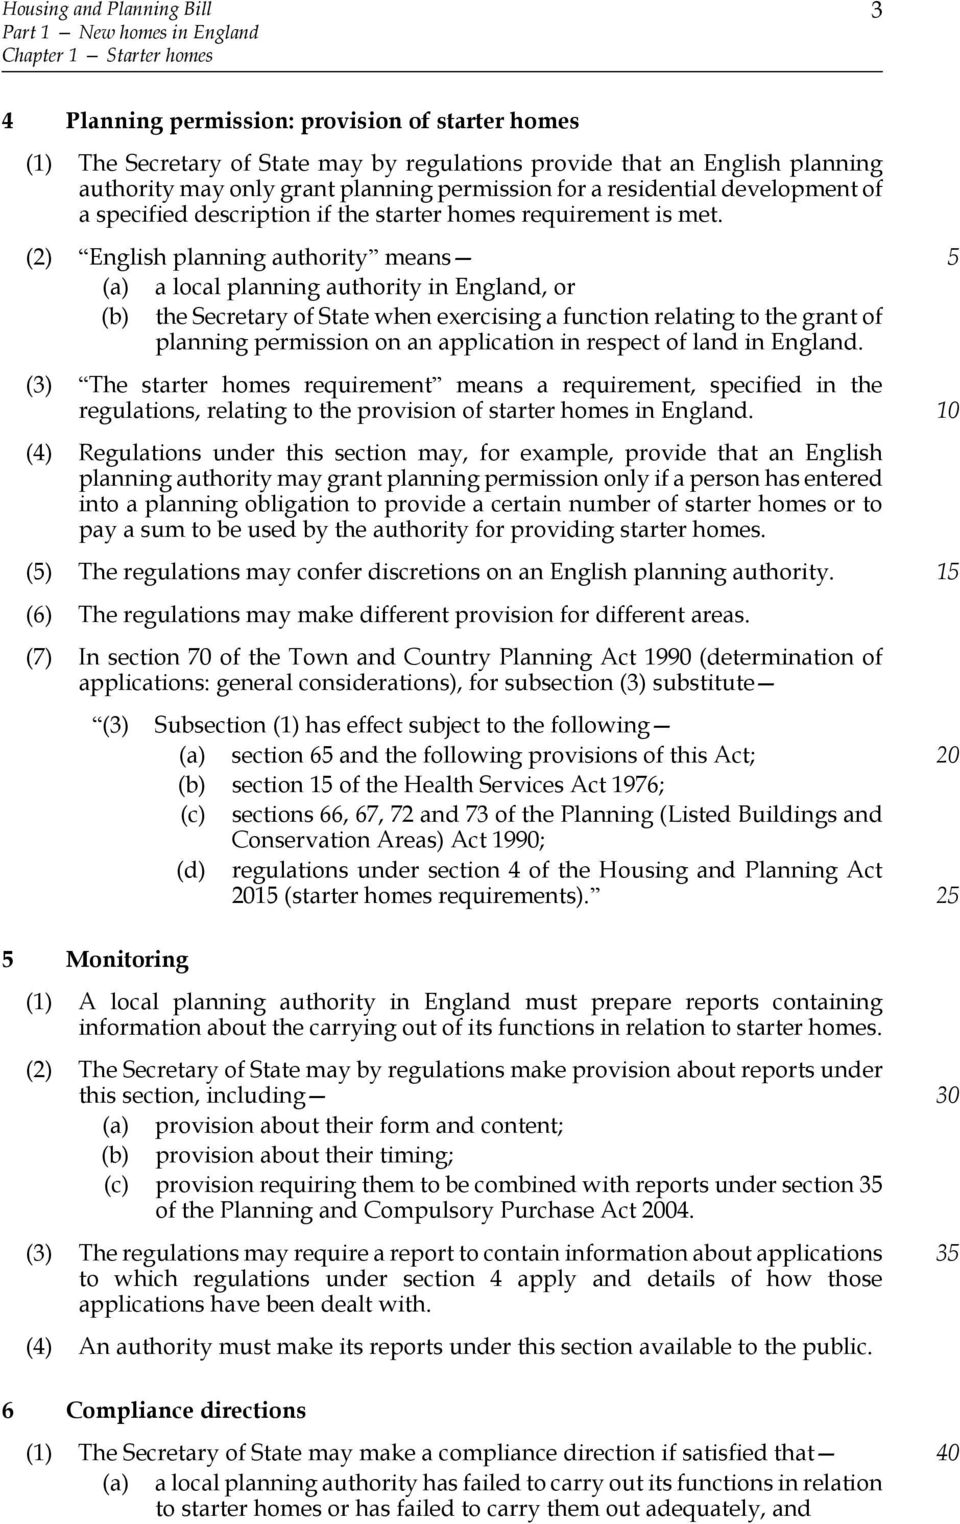 (2) English planning authority means (a) a local planning authority in England, or (b) the Secretary of State when exercising a function relating to the grant of planning permission on an application